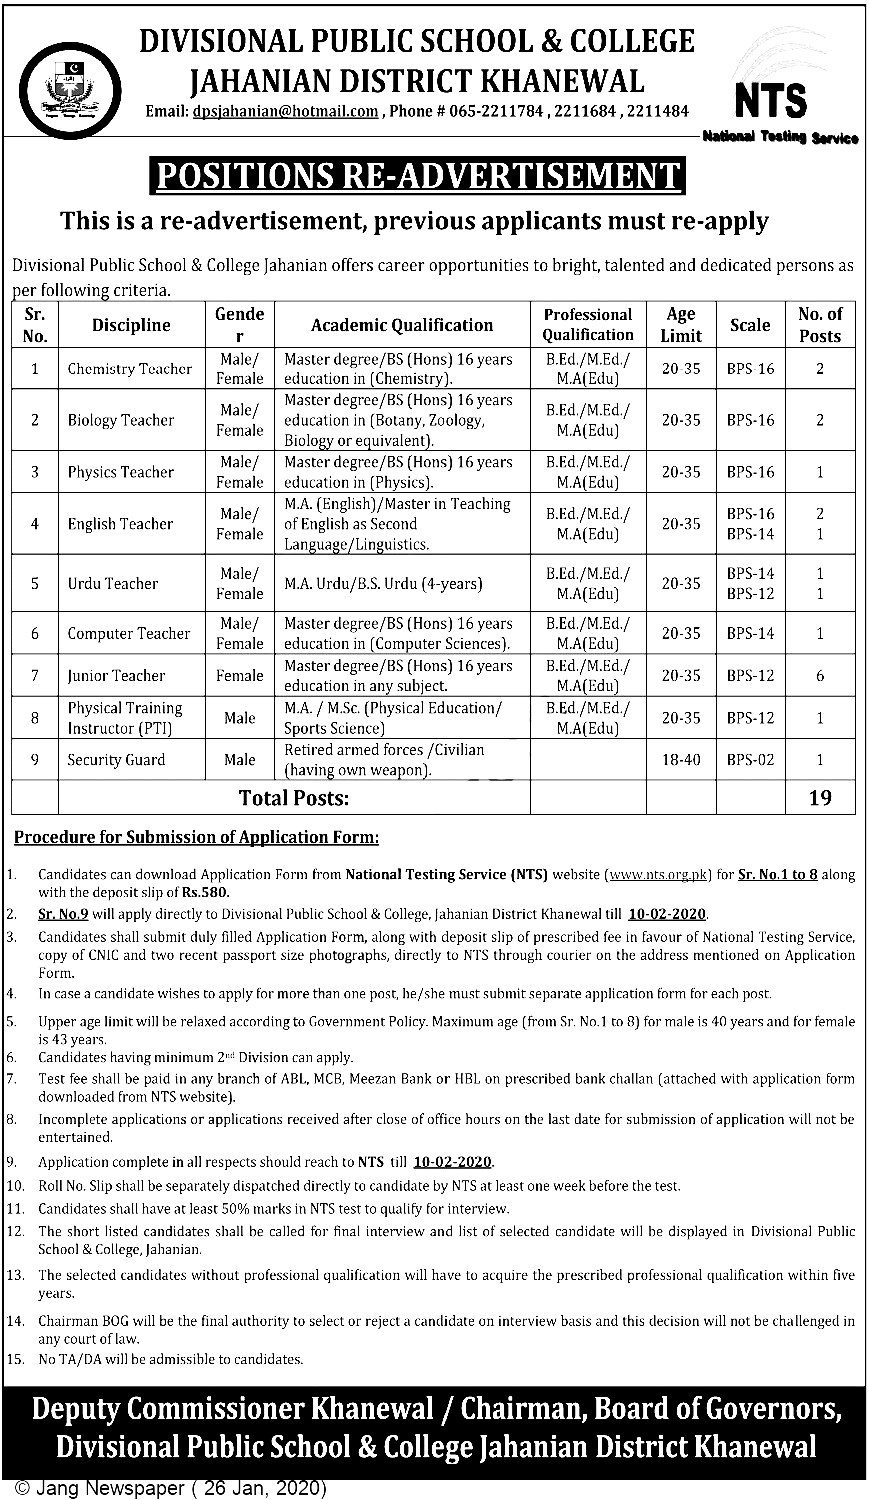 Divisional Public School DPS College Jahanian Khanewal NTS Jobs 2020 Application Form Roll No Slip